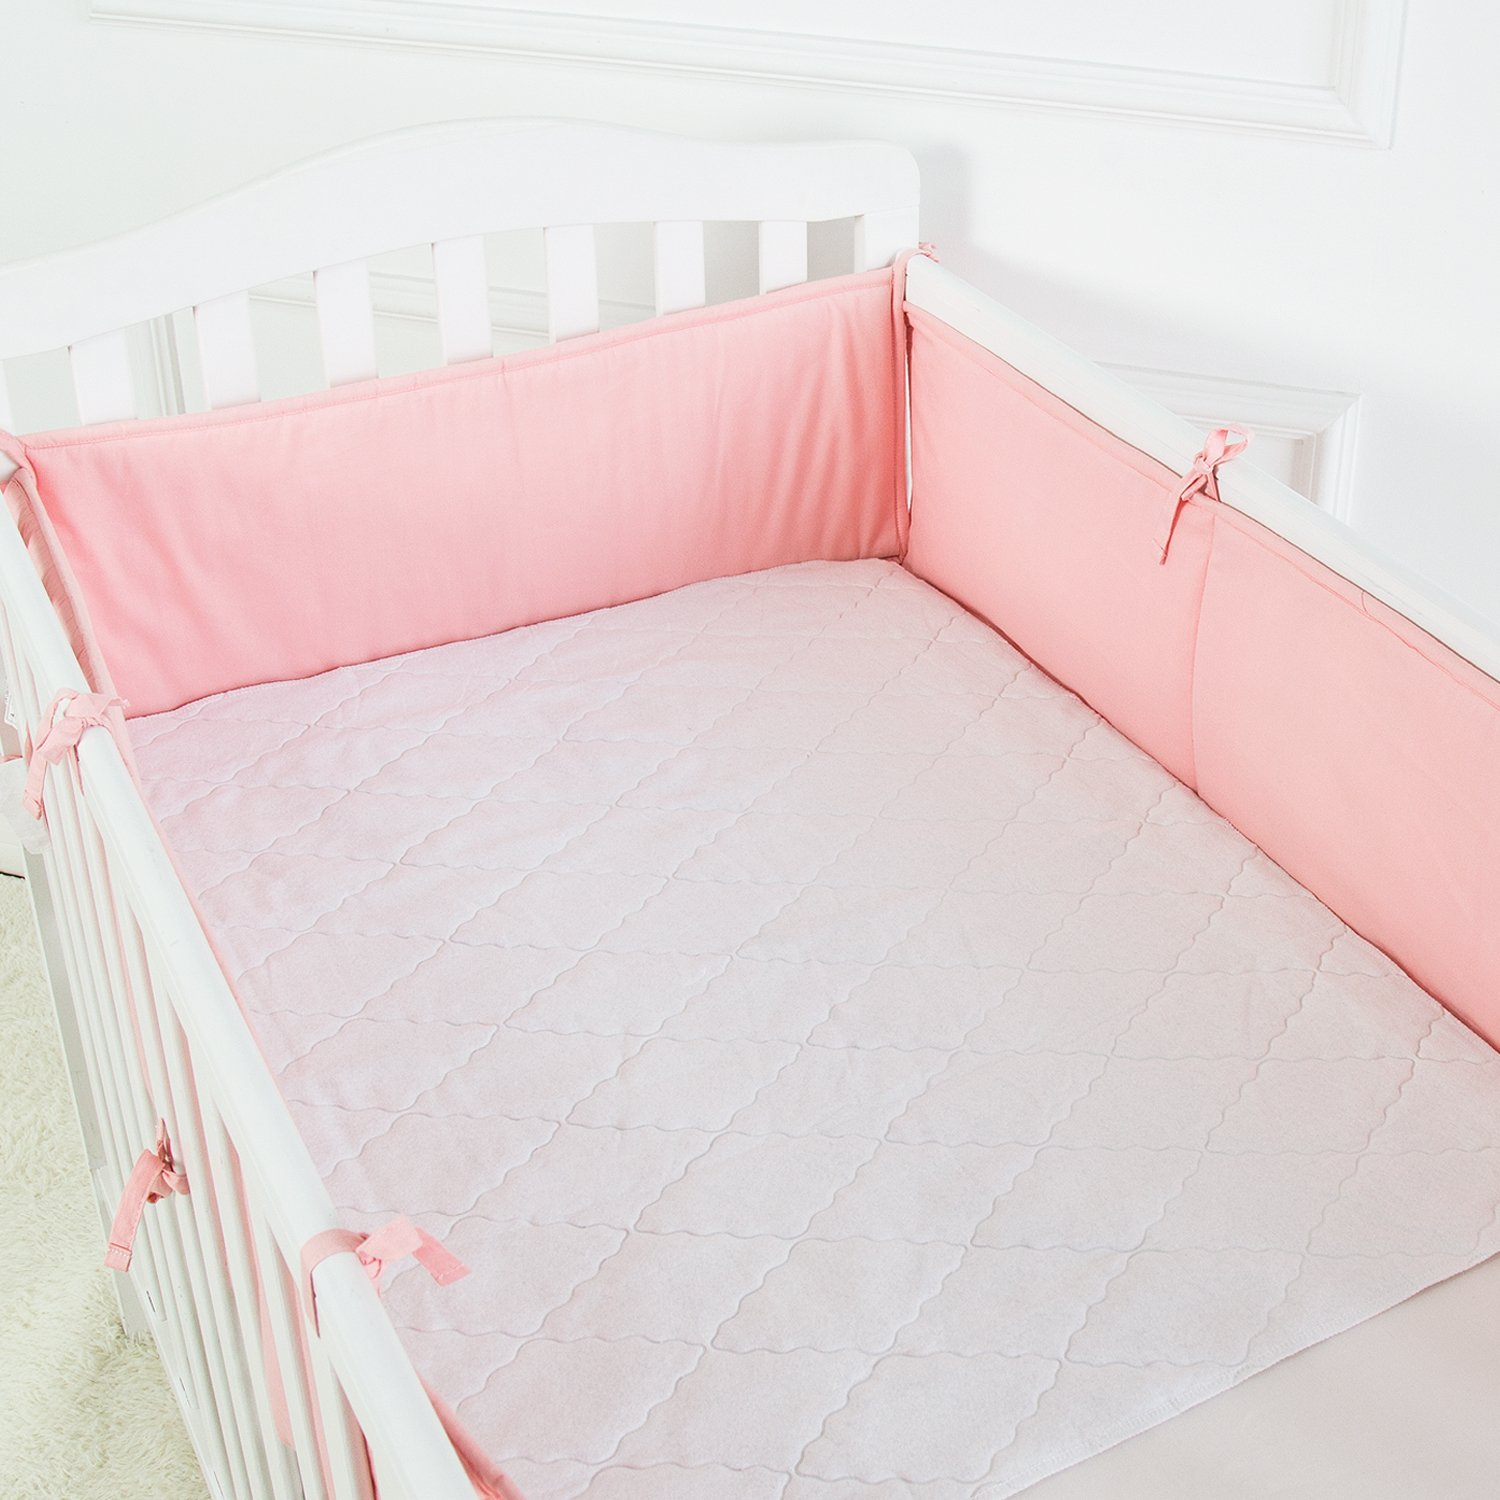 Hypoallergenic Breathable Non Toxic Natural Baby Bed ...